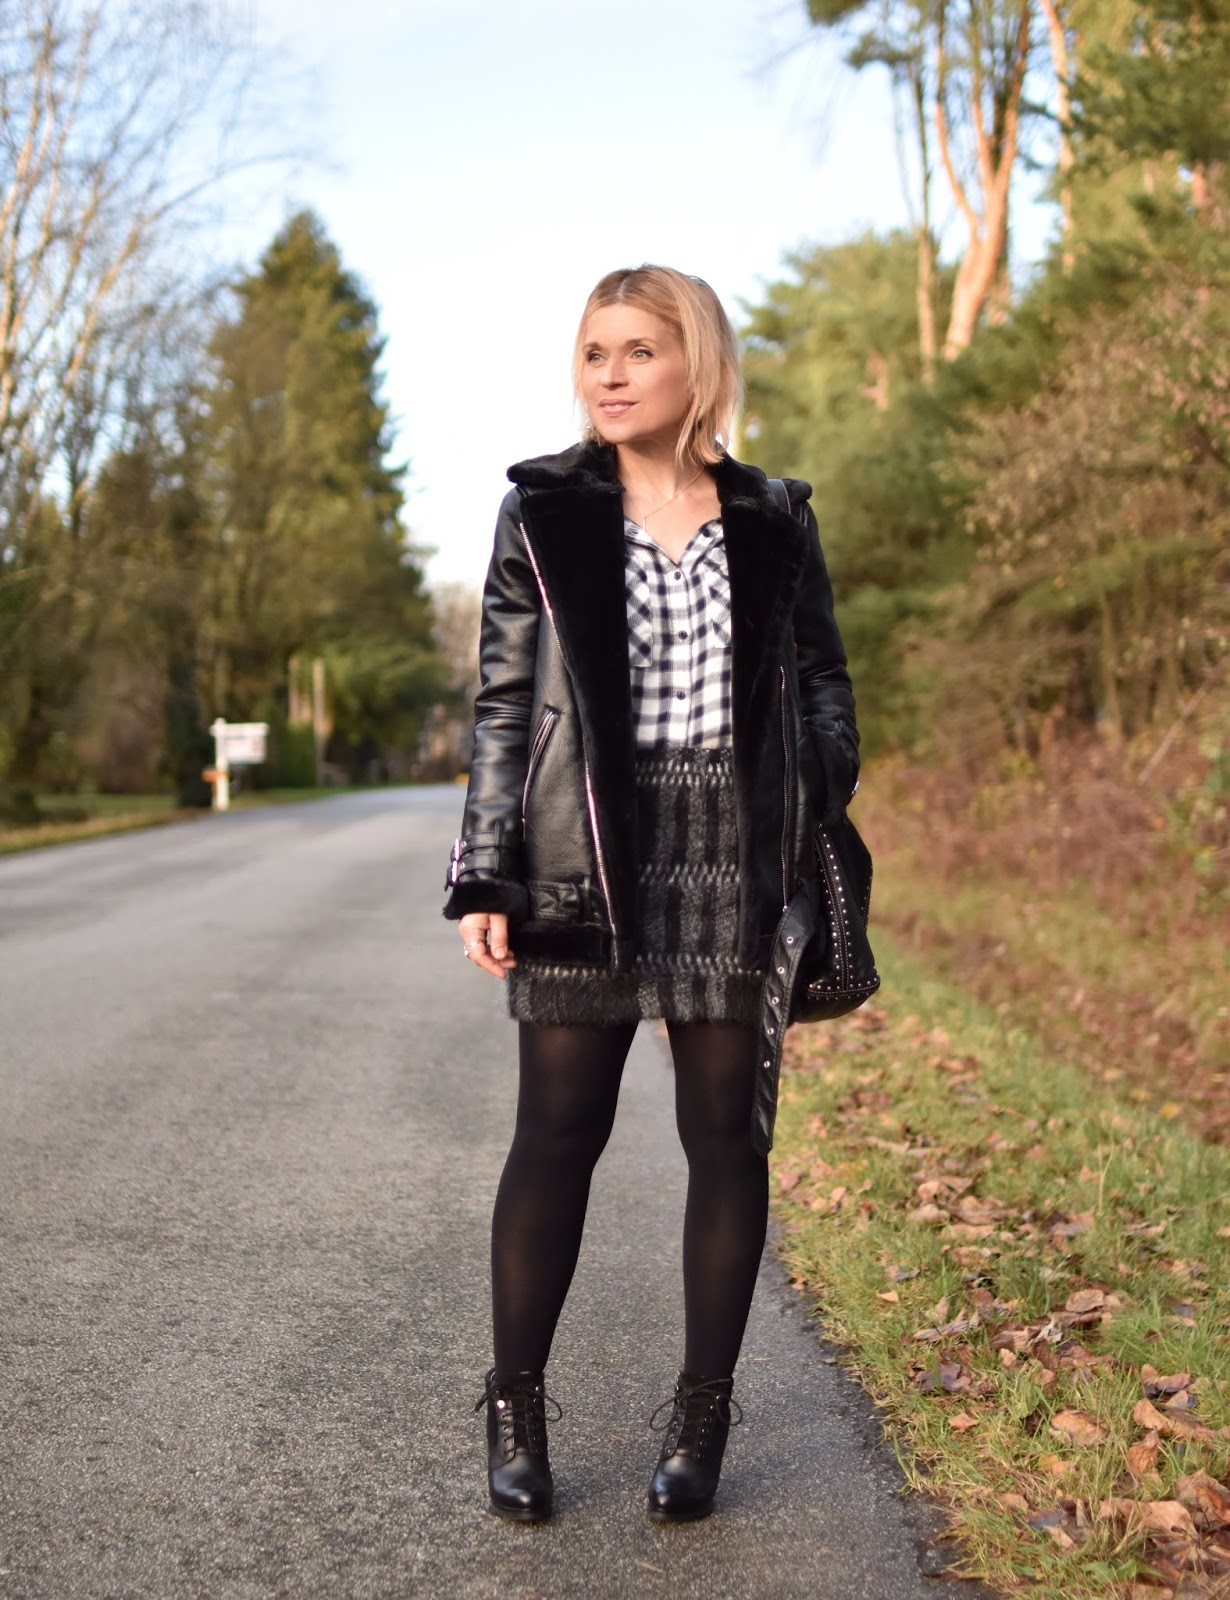 Monika Faulkner outfit inspiration - styling a mohair miniskirt with a plaid shirt, opaque tights, lace-up booties, and a moto-inspired coat